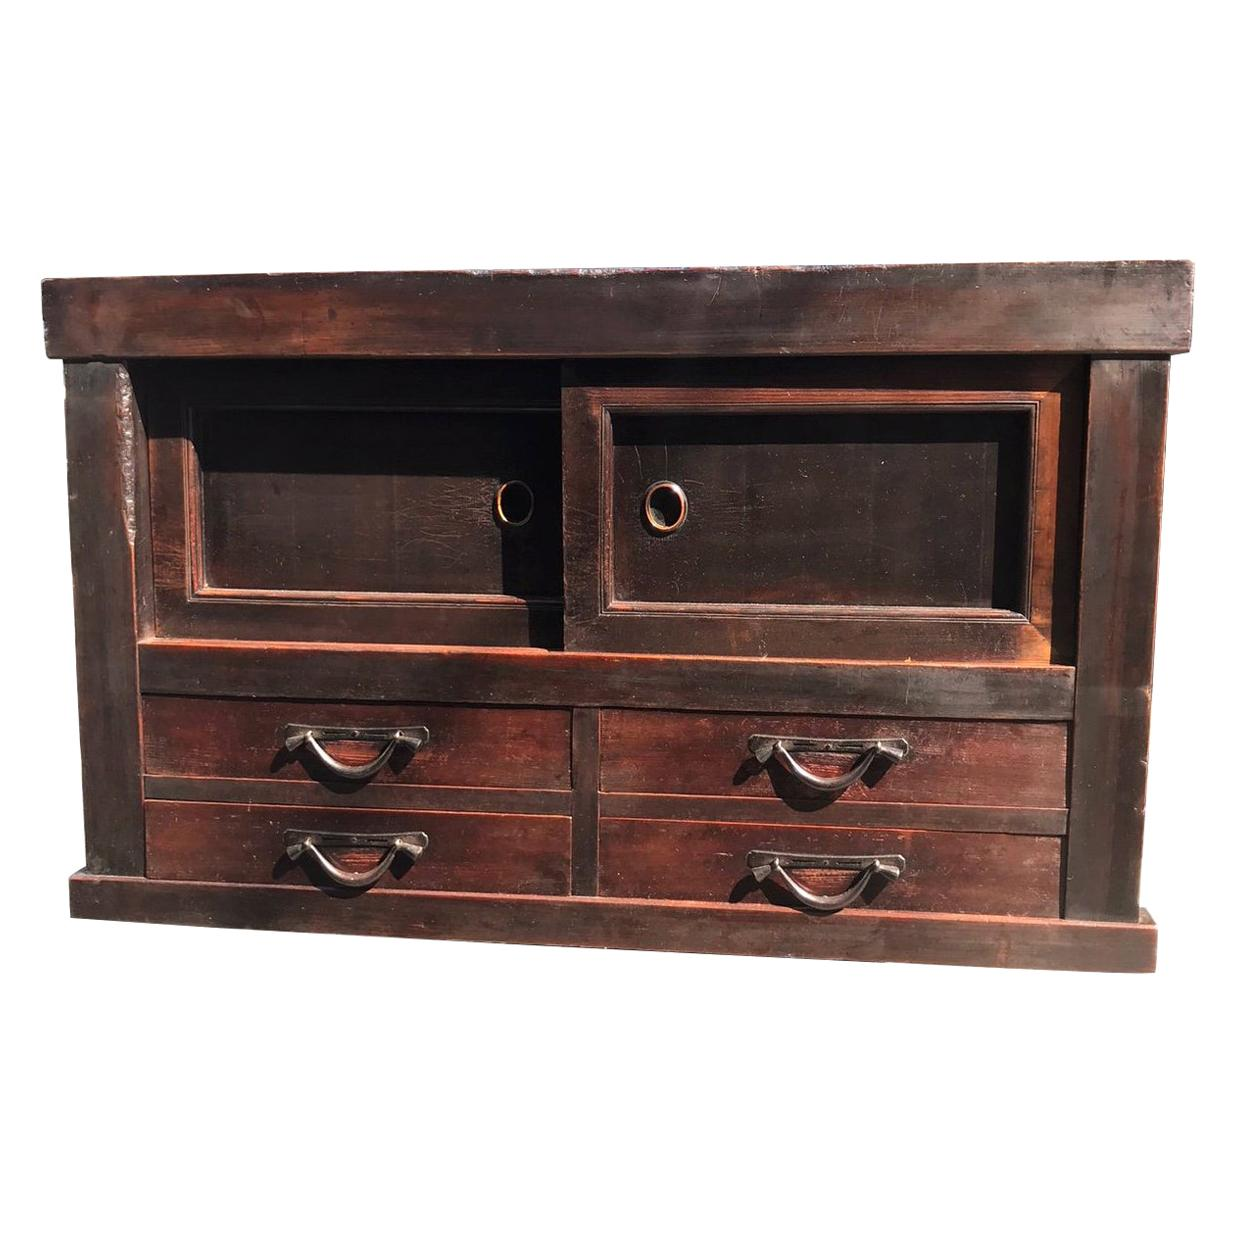 Japanese Fine Arts Crafts Antique Handcrafted Wood Tansu Cabinet